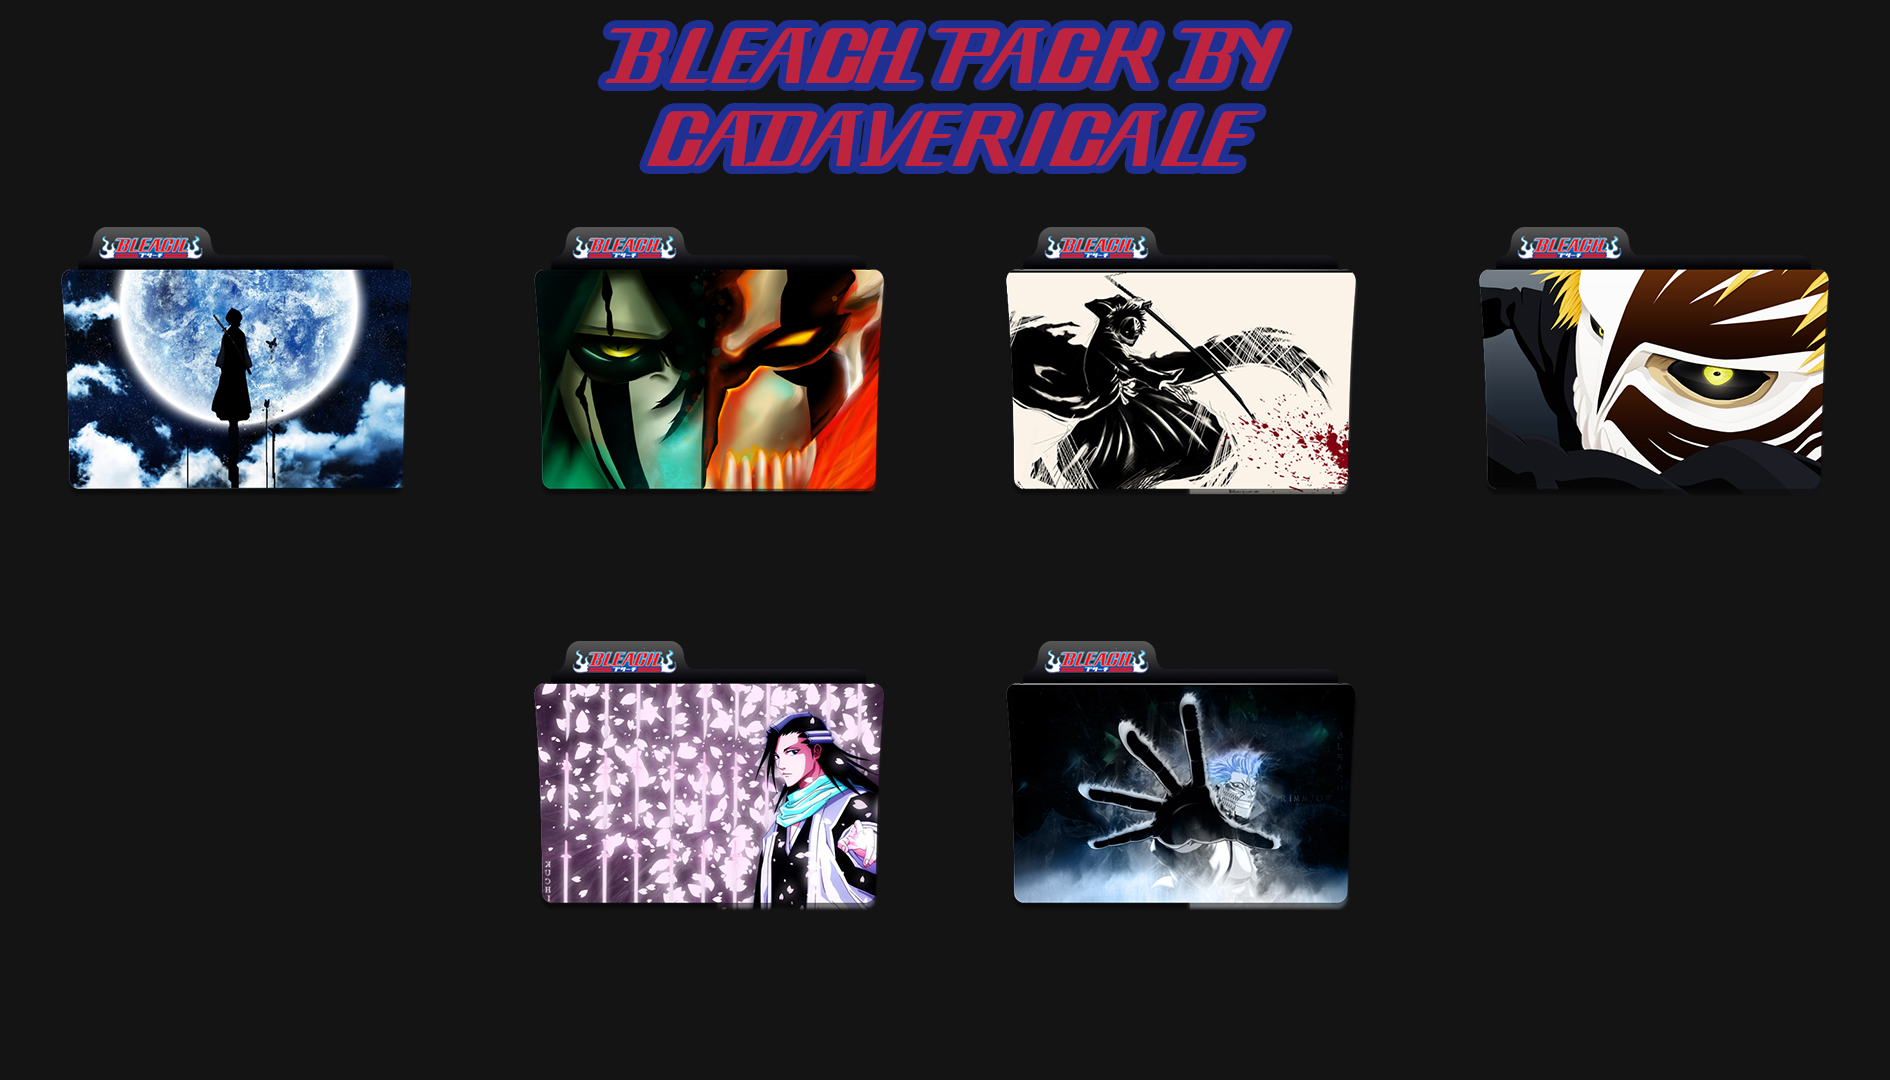 Bleach folder icons pack by Cadavericale on DeviantArt